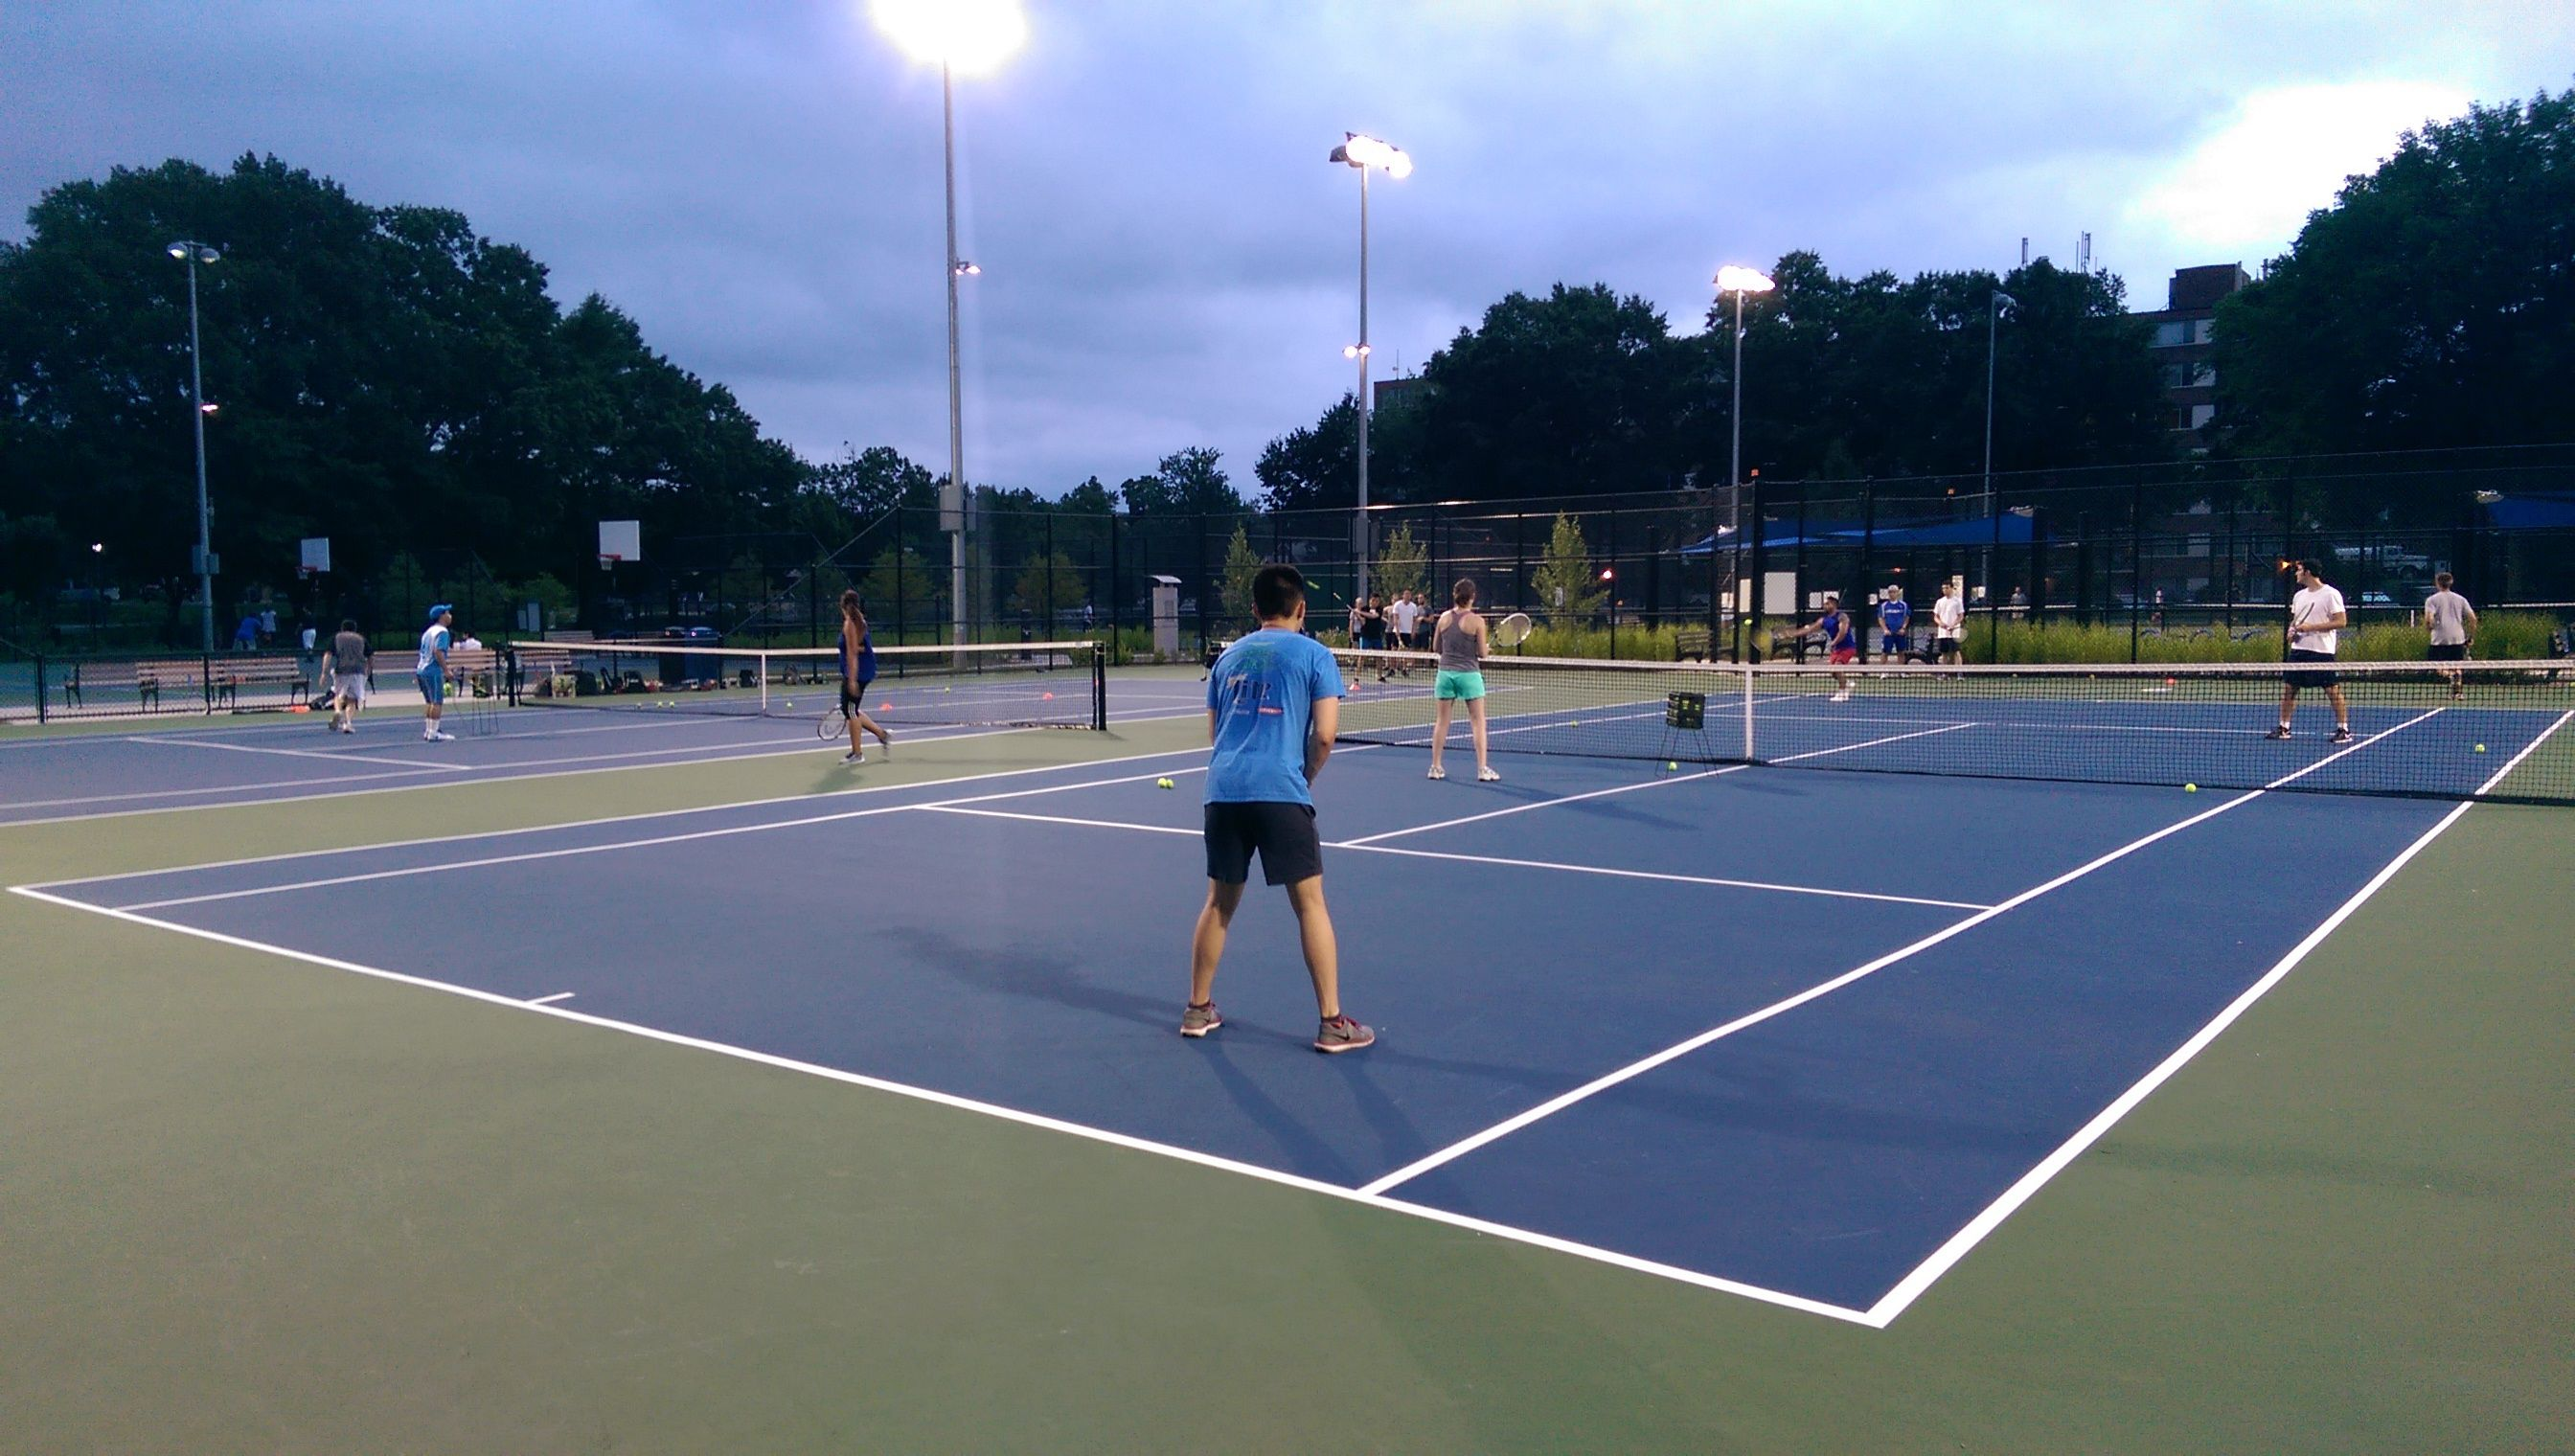 What's the racket! DC/VA tennis and social for 20s/30s